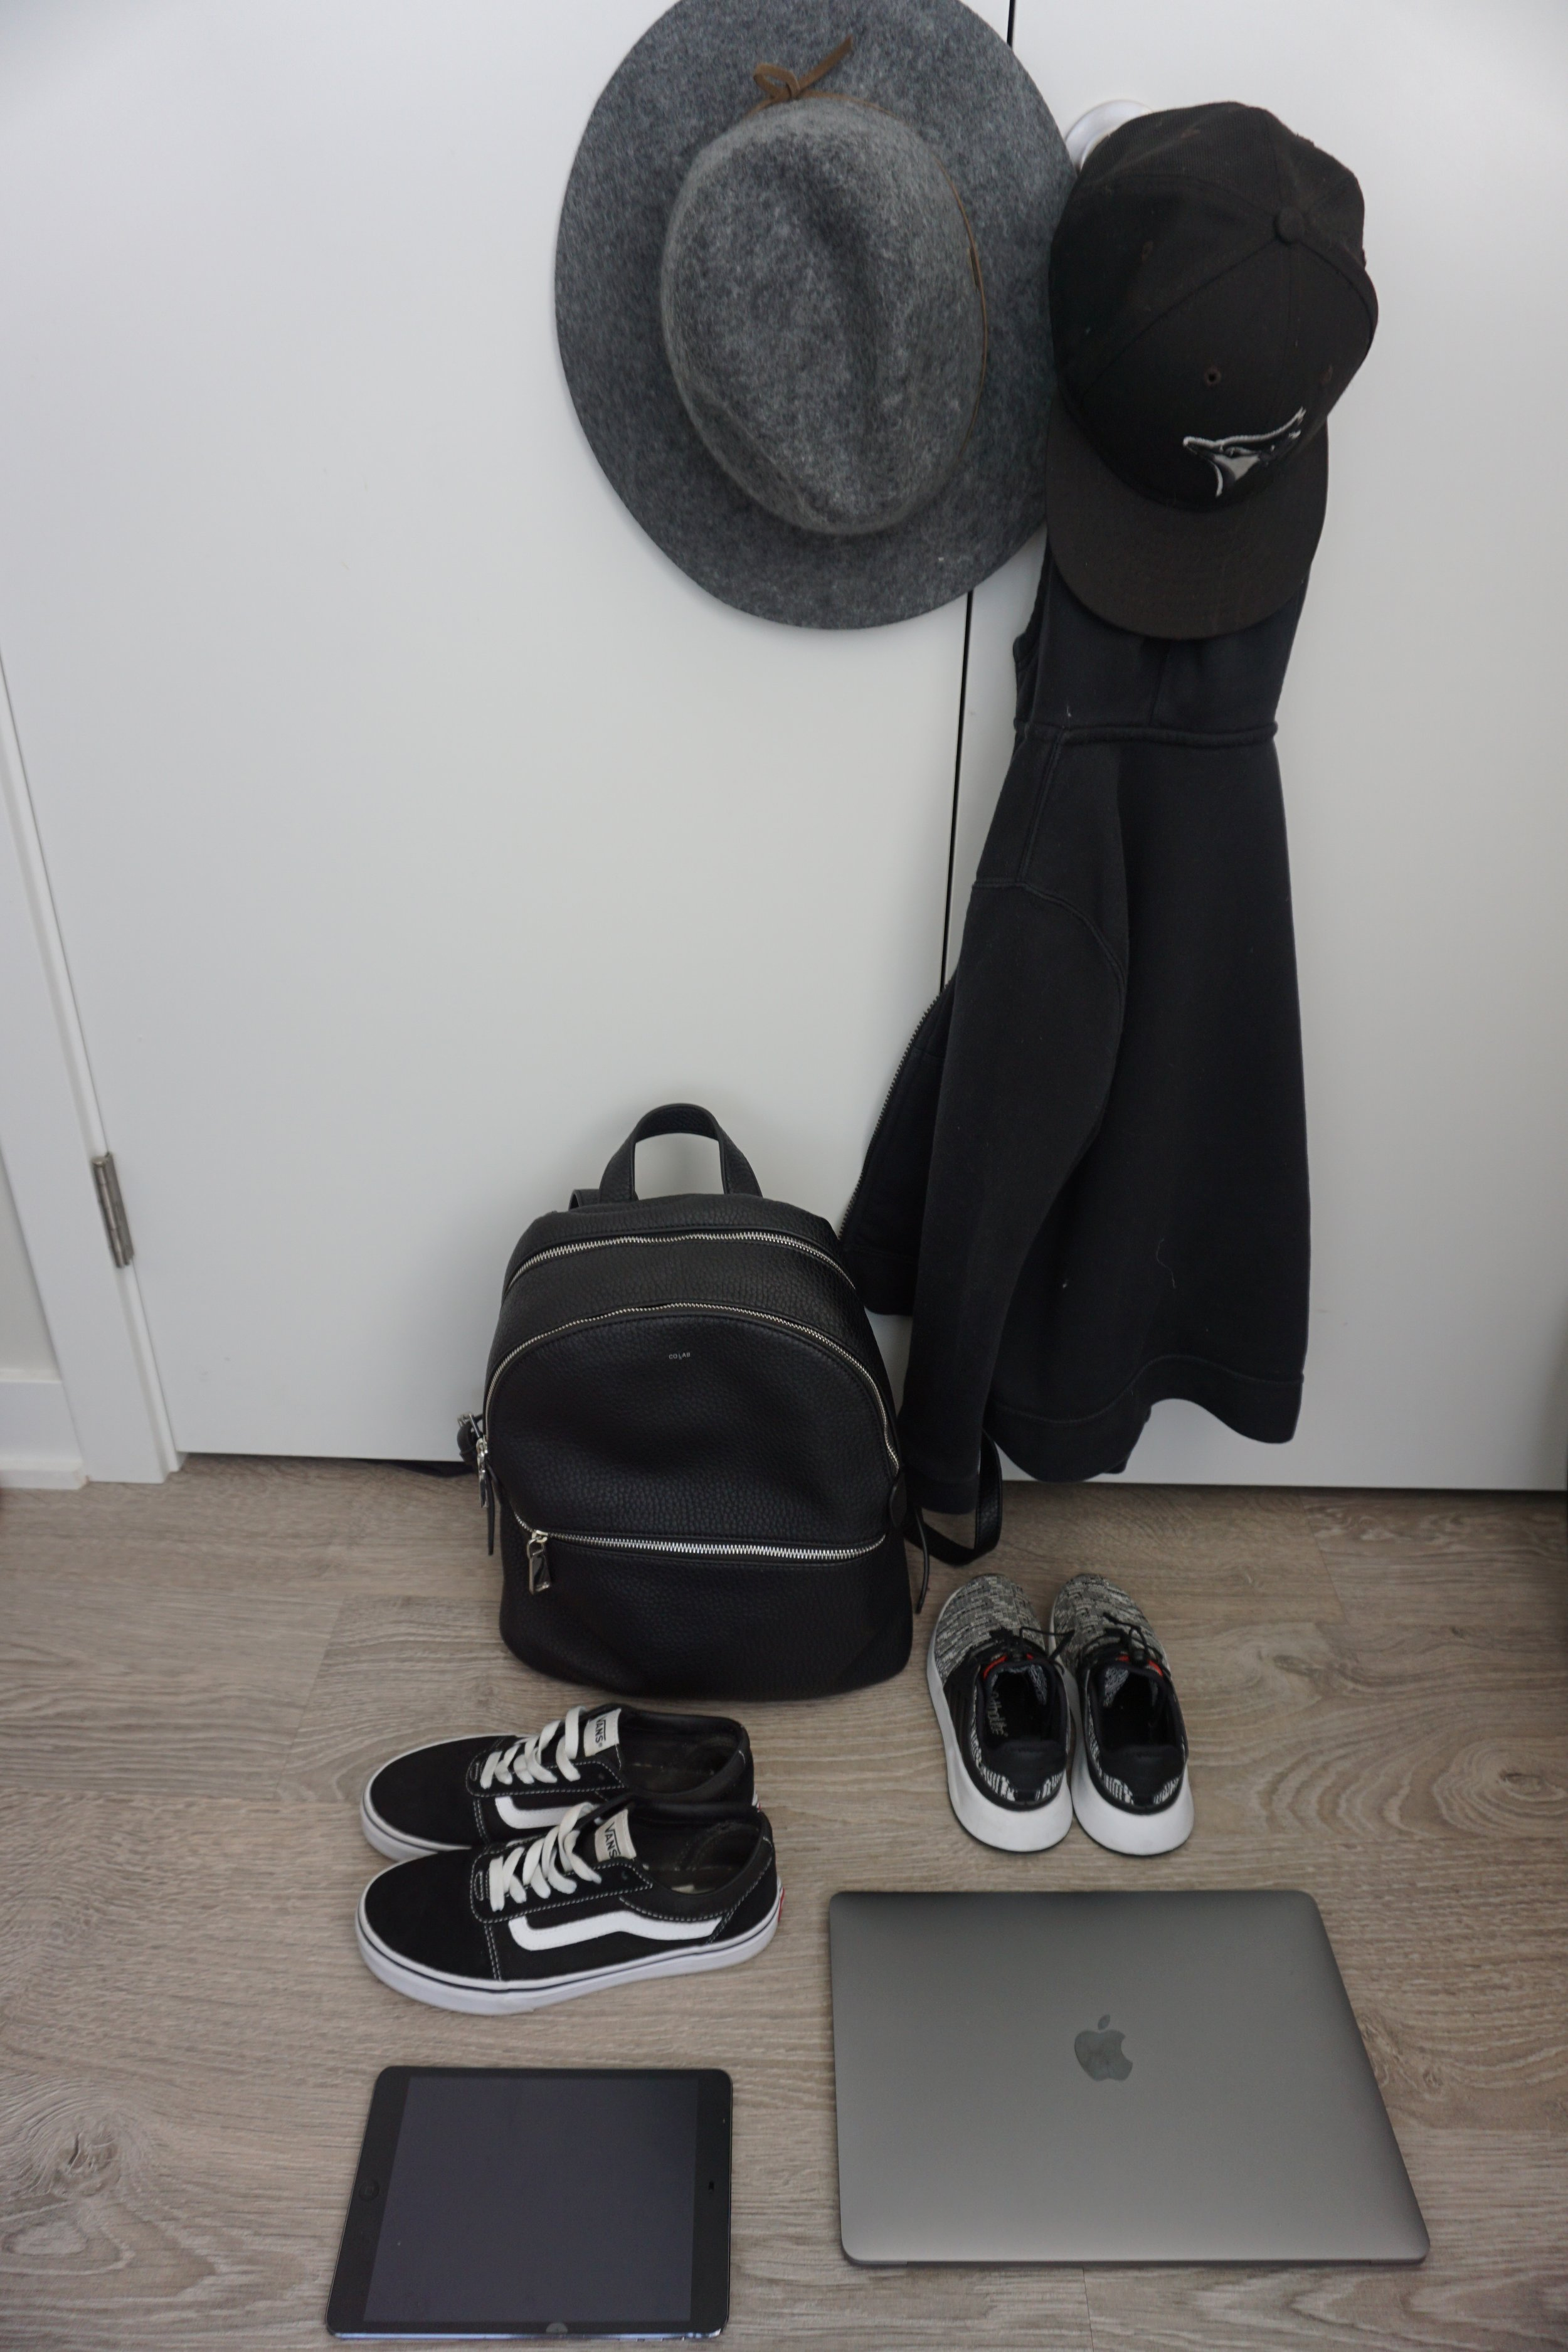 Some of the things we will be wearing/carrying on the plane. A backpack like this counts as a purse, so you could also carry on a bag.